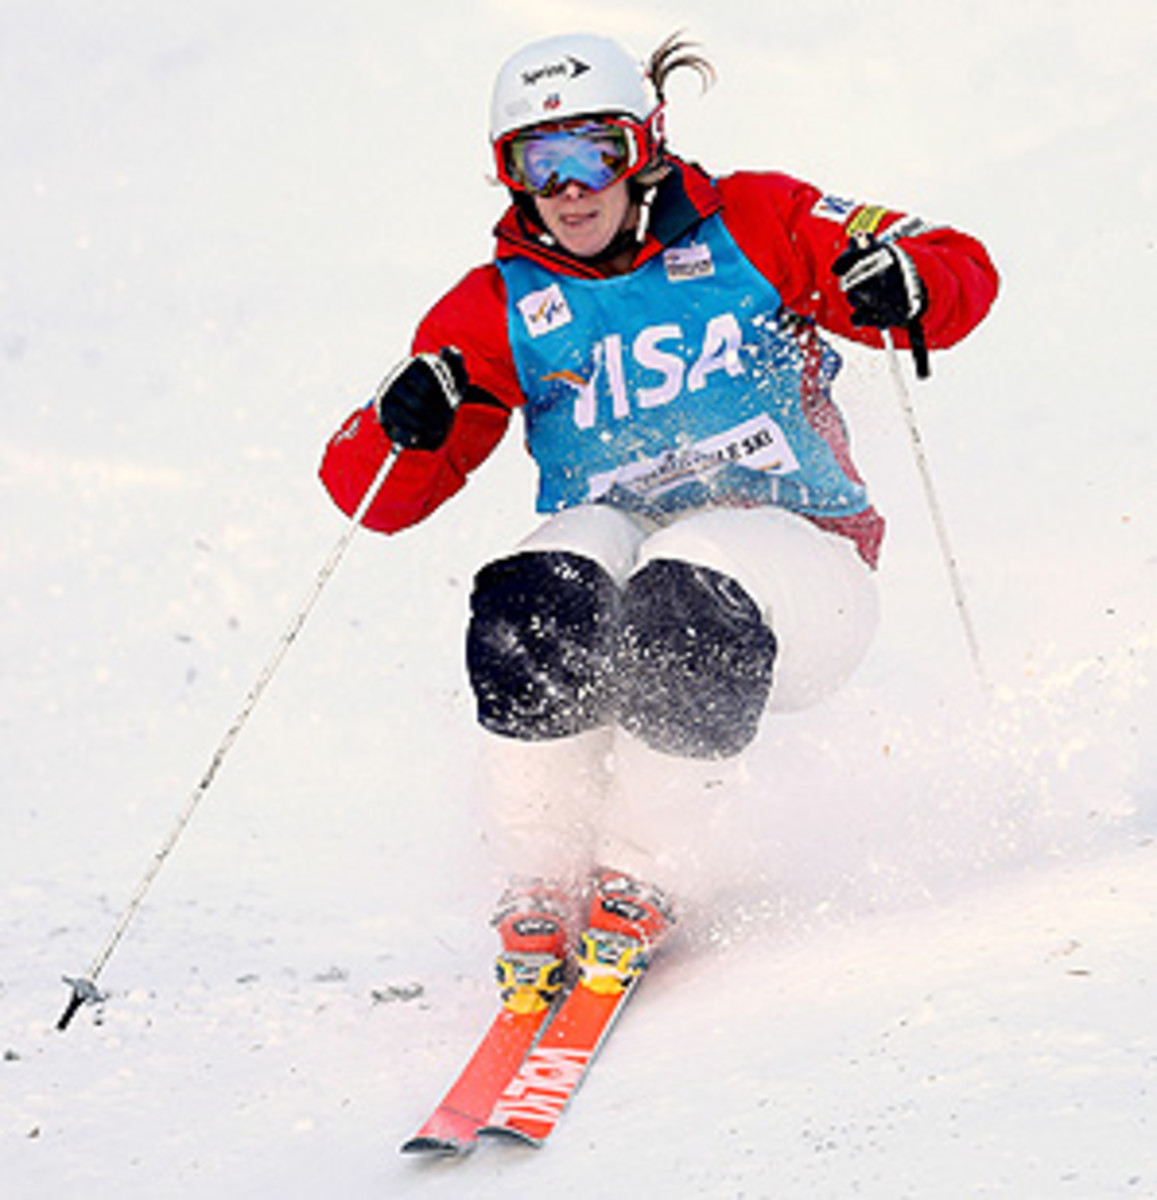 U.S.' Hannah Kearney currently leads the World Cup standings with 445 points.